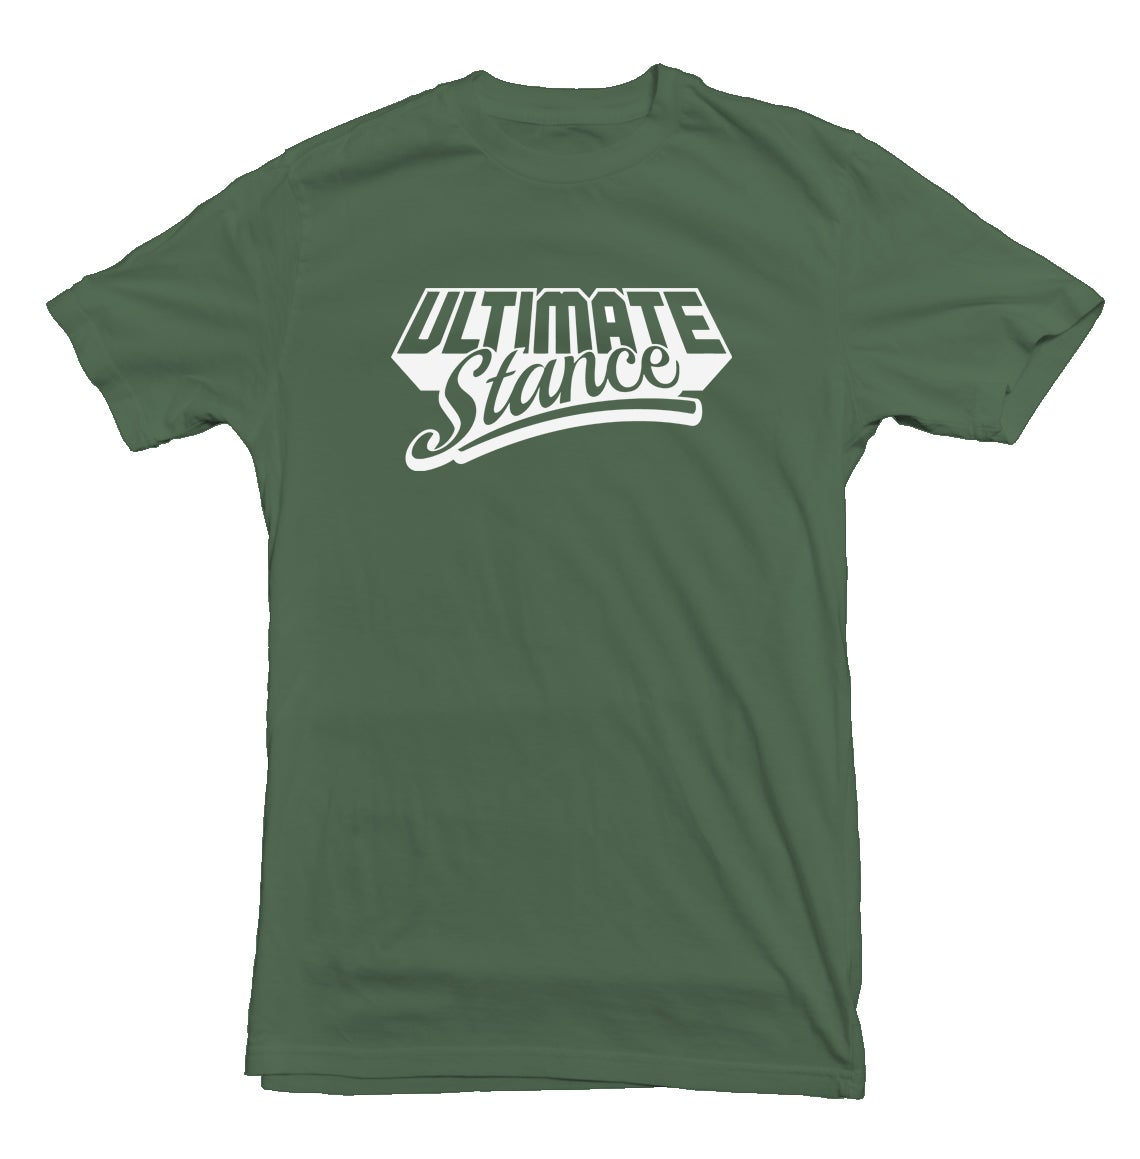 Image of Men's Ultimate Stance T-Shirt - Military Green with White Logo - End Of Line Product